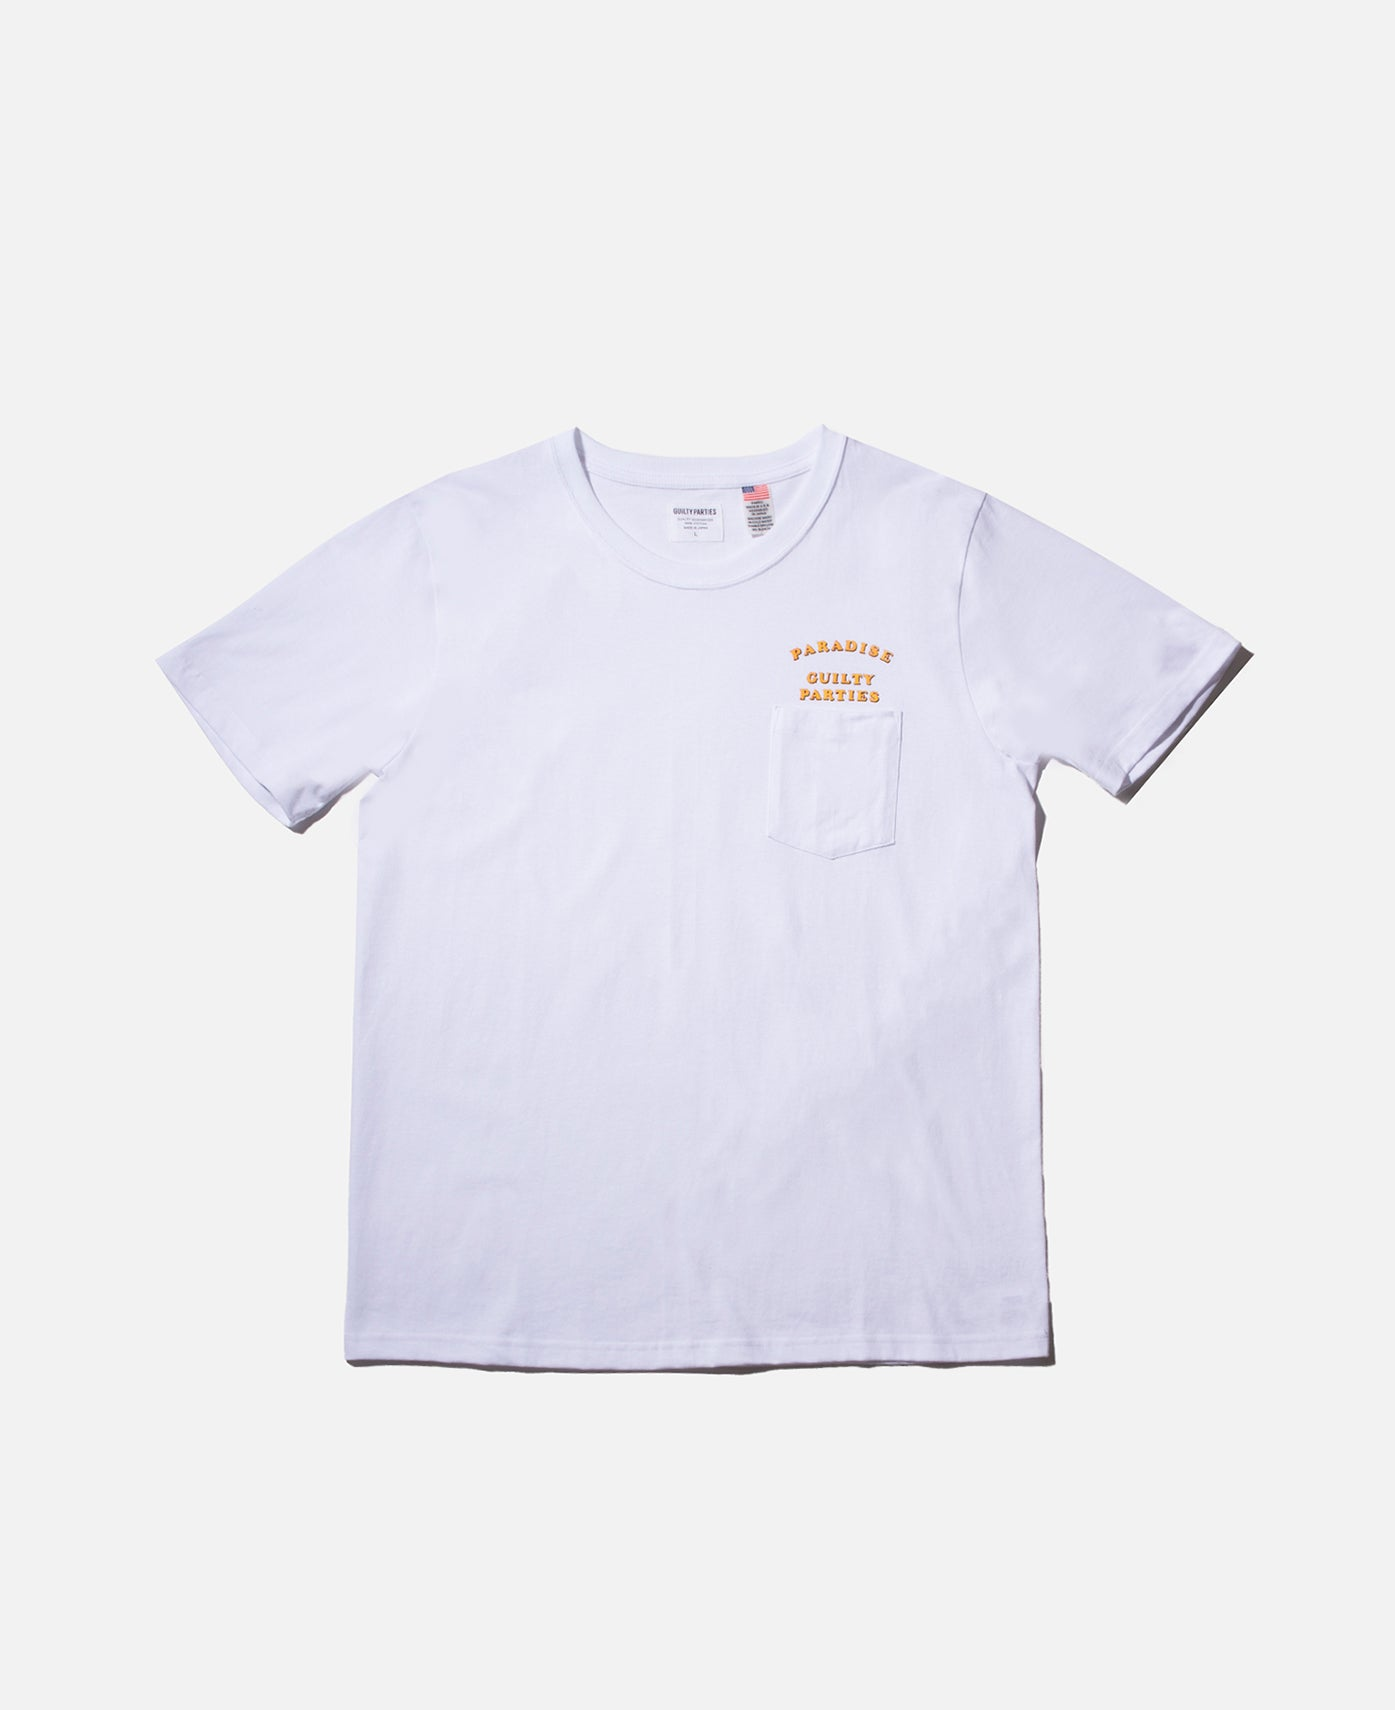 STRAIGHT SYNTH S/S T-SHIRT WHITE